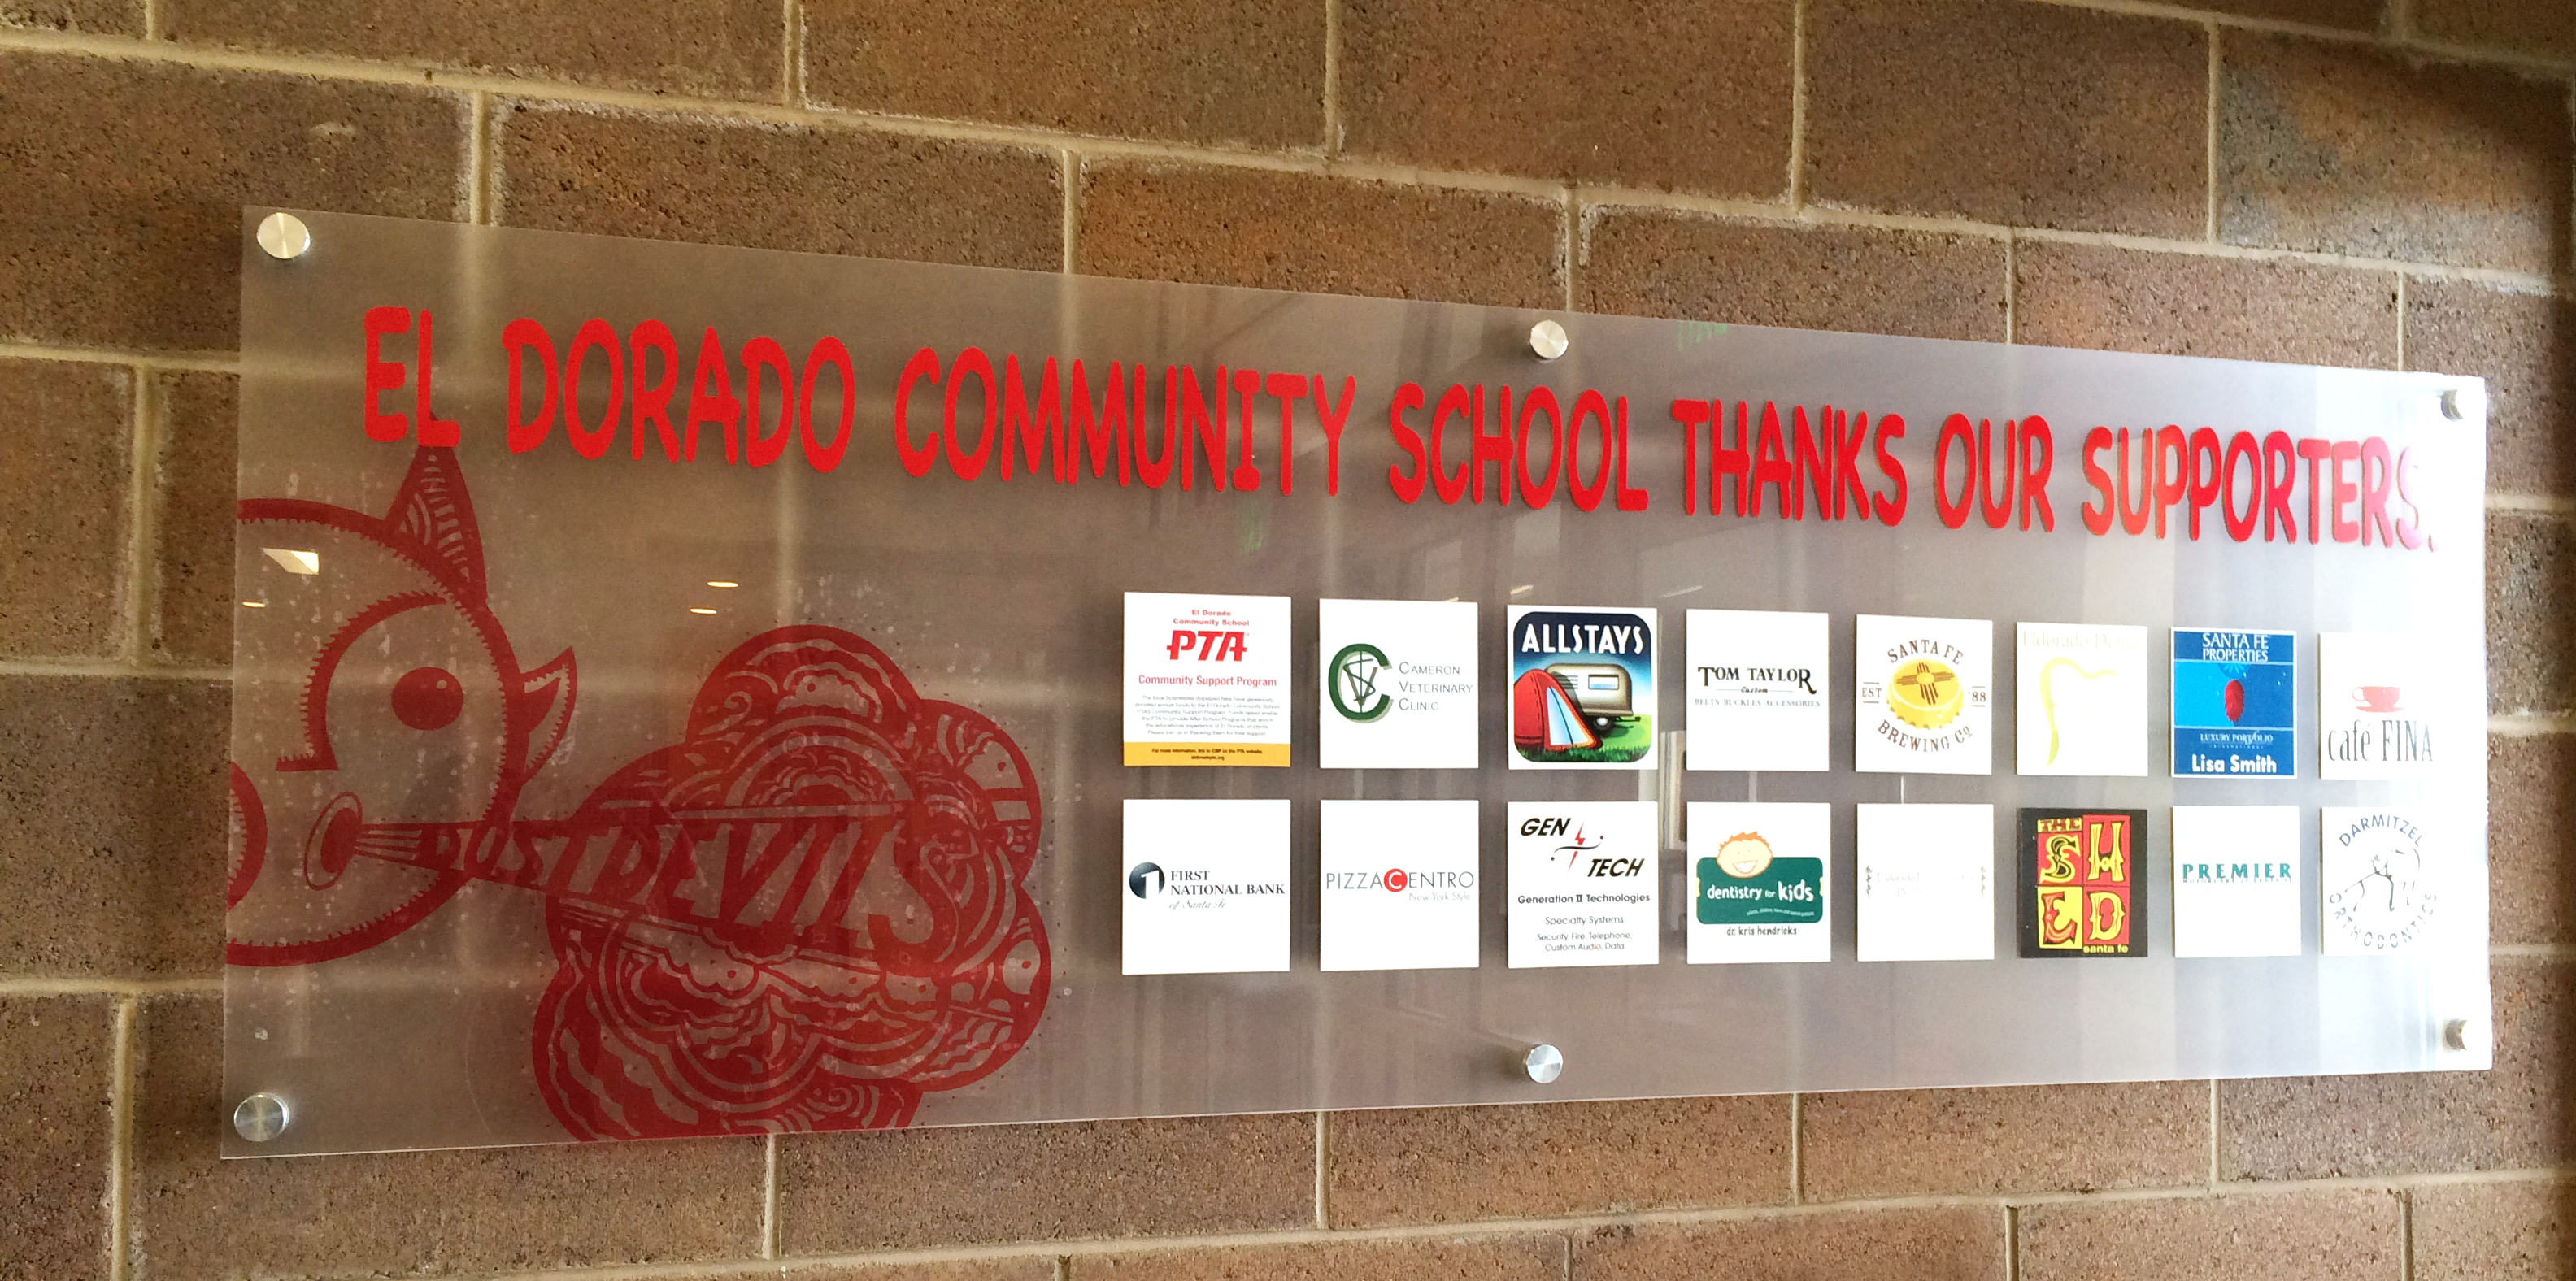 Eldorado Community Schools Community Support thank you board with the logos of corporate sponsors